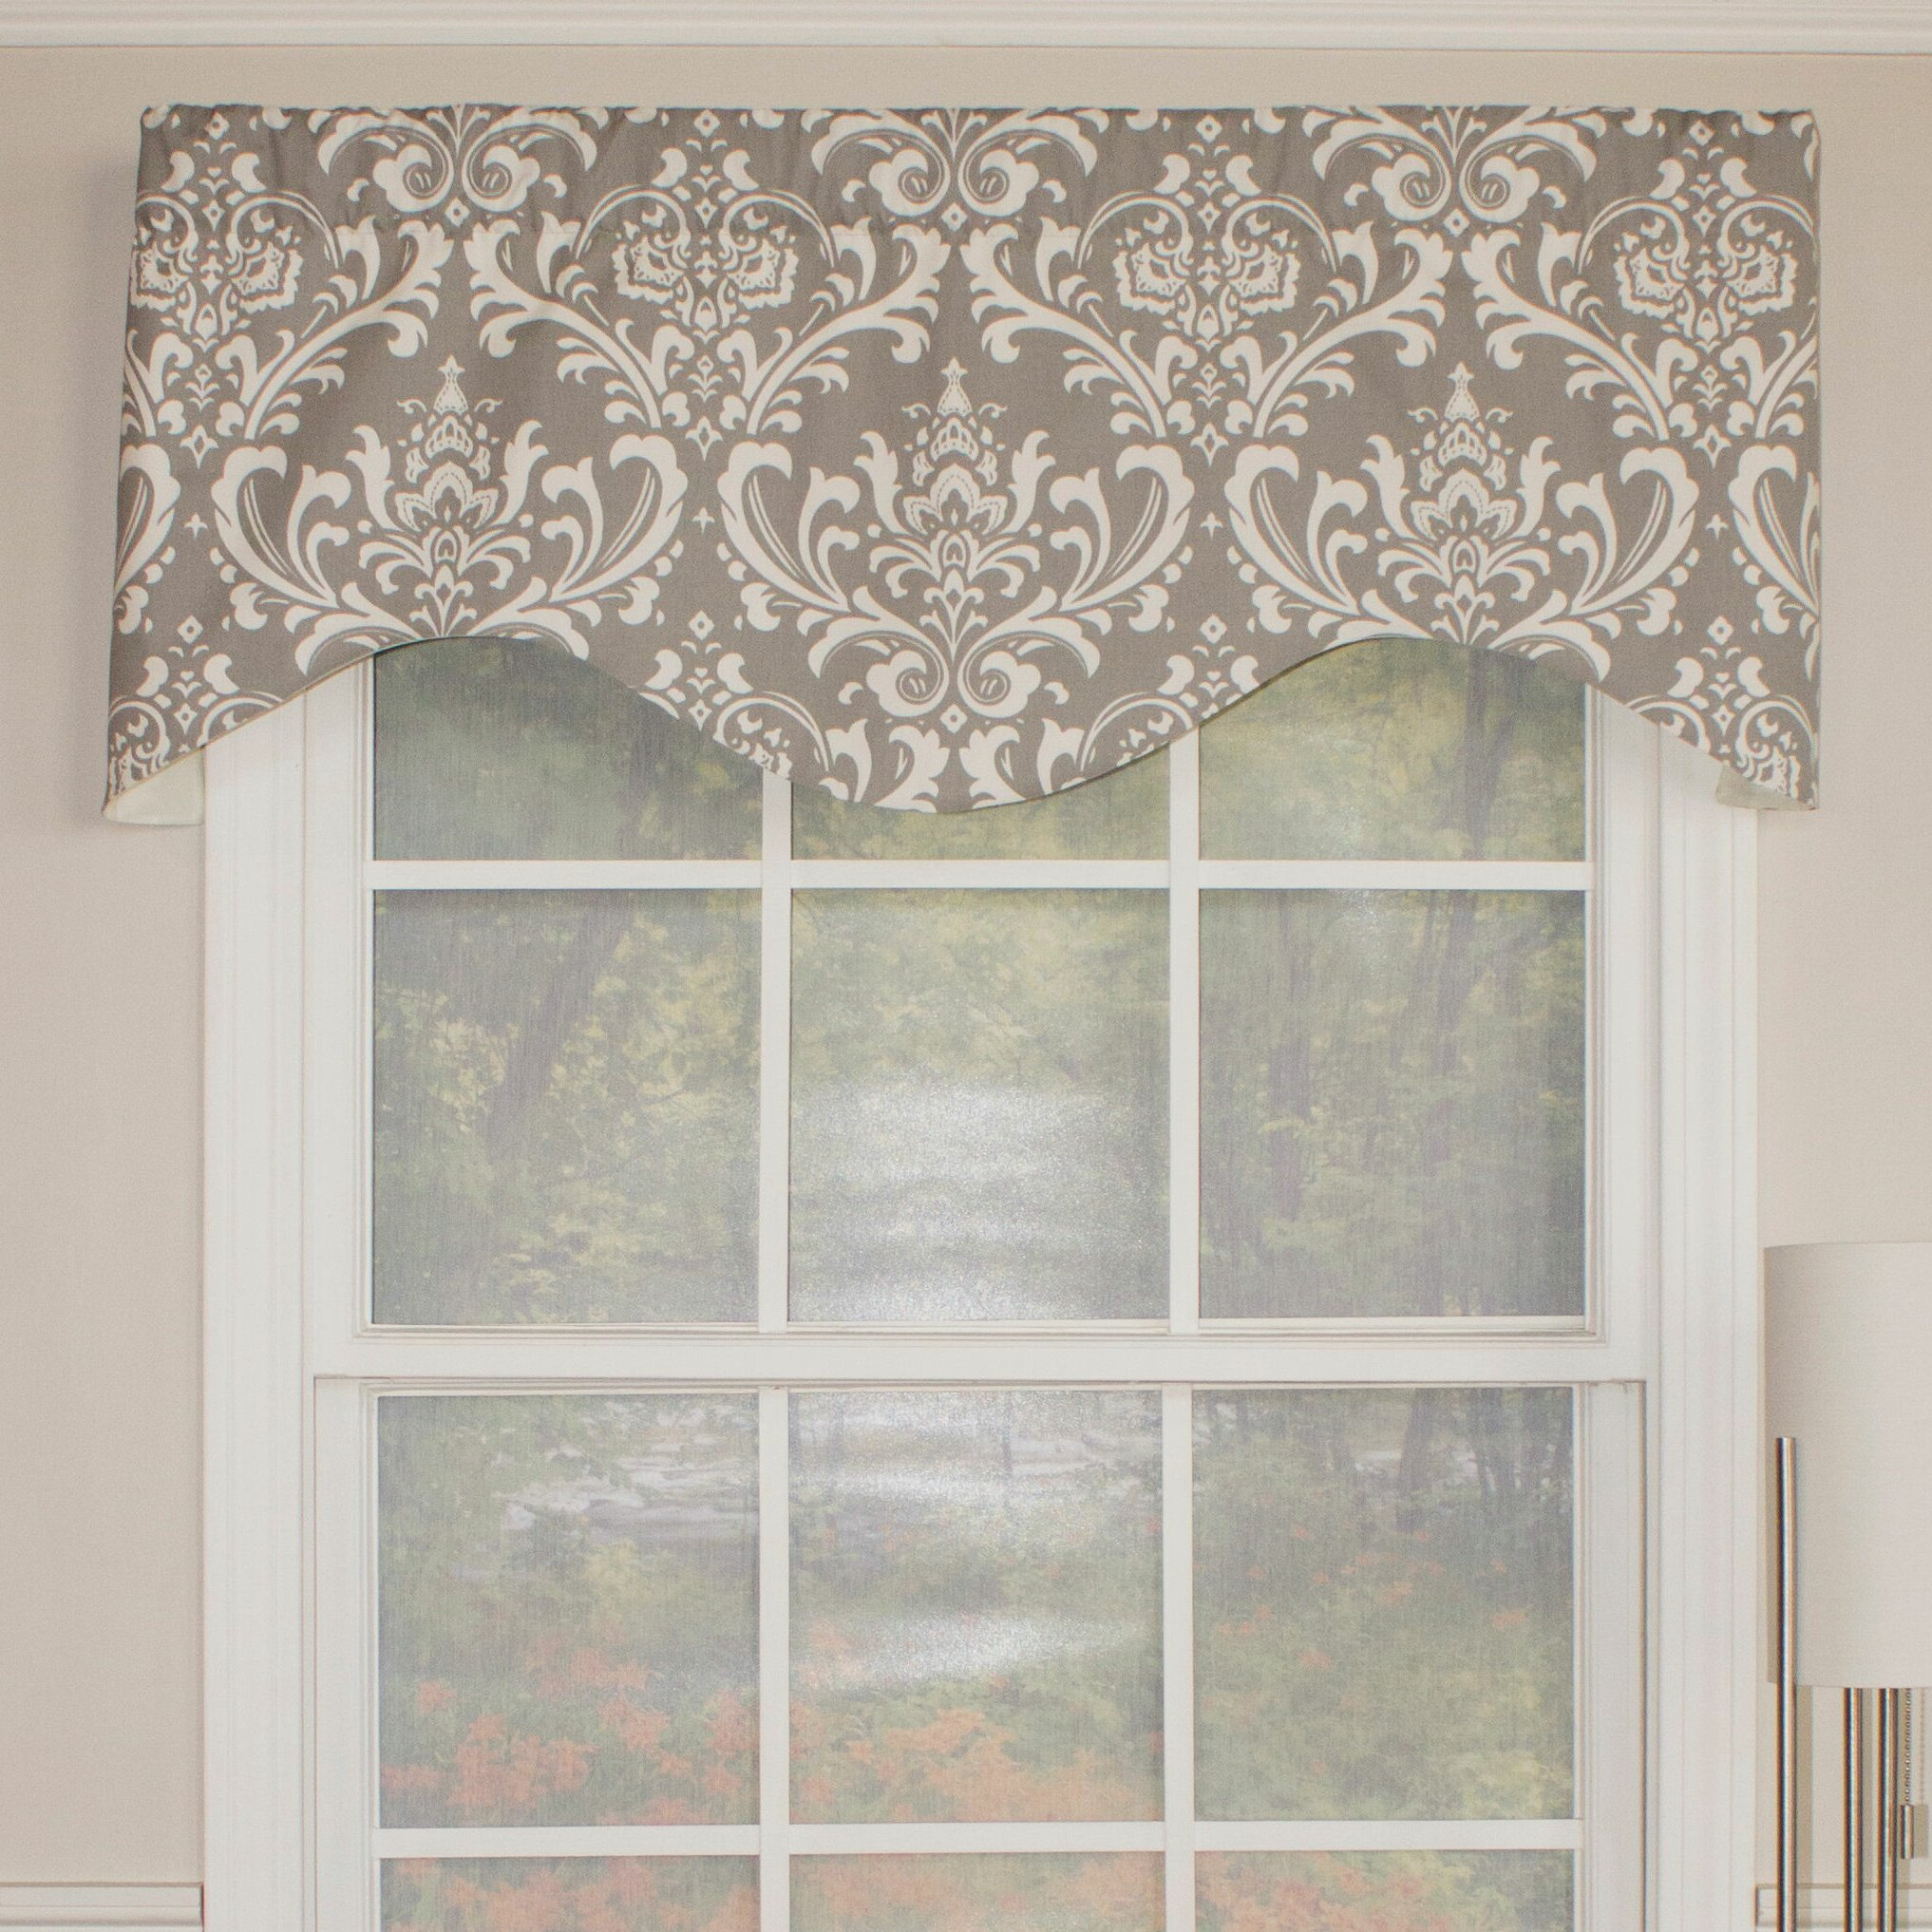 Rlf home royal damask cornice 50 curtain valance for Window valance